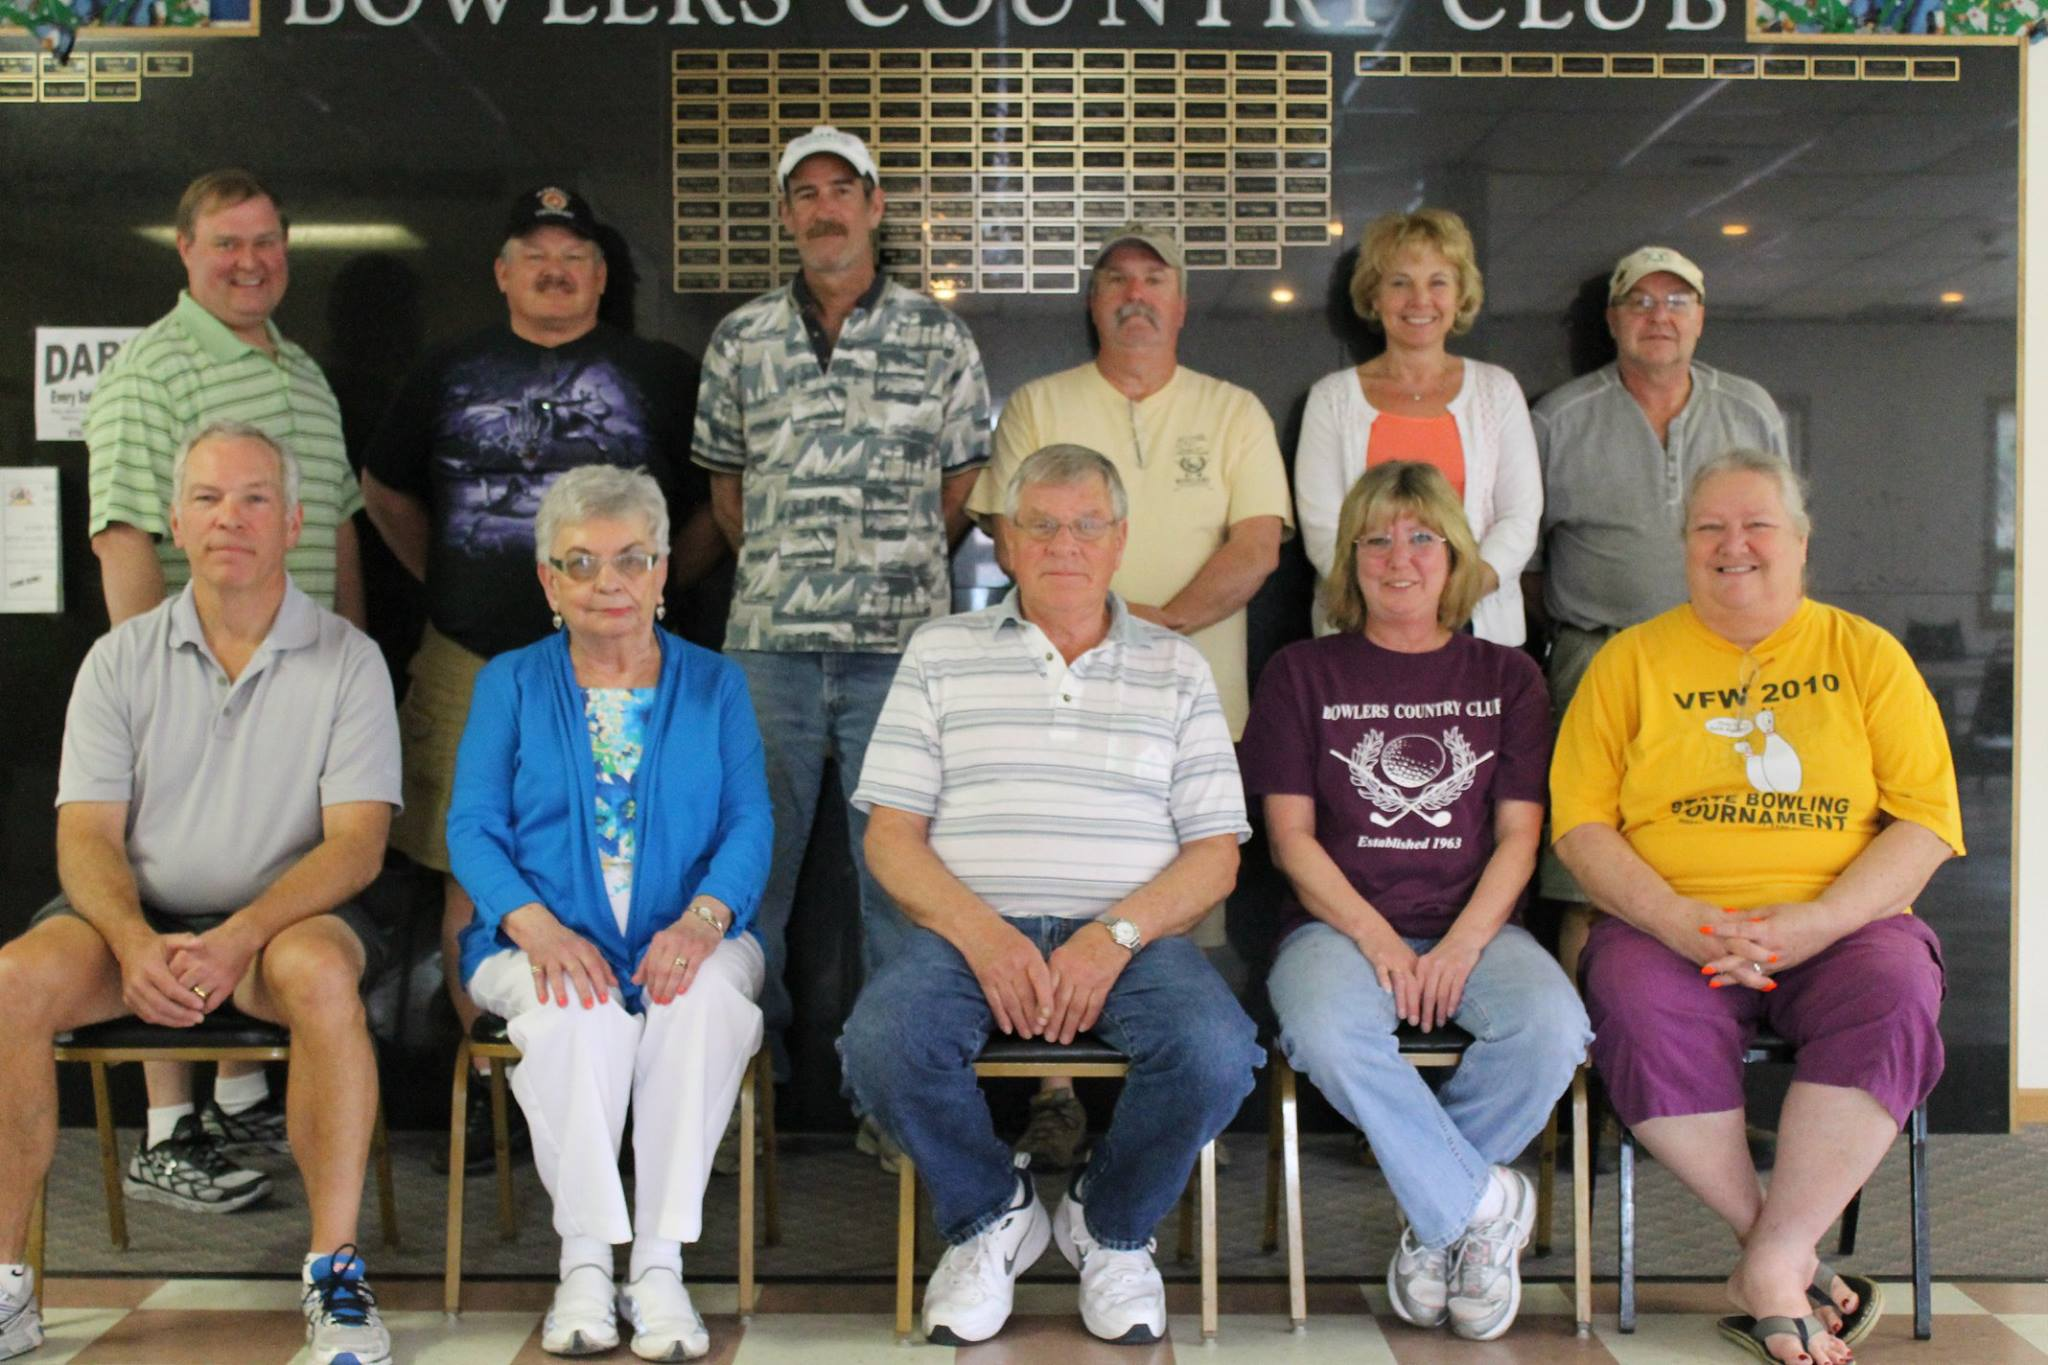 2014bowlersboardmembers